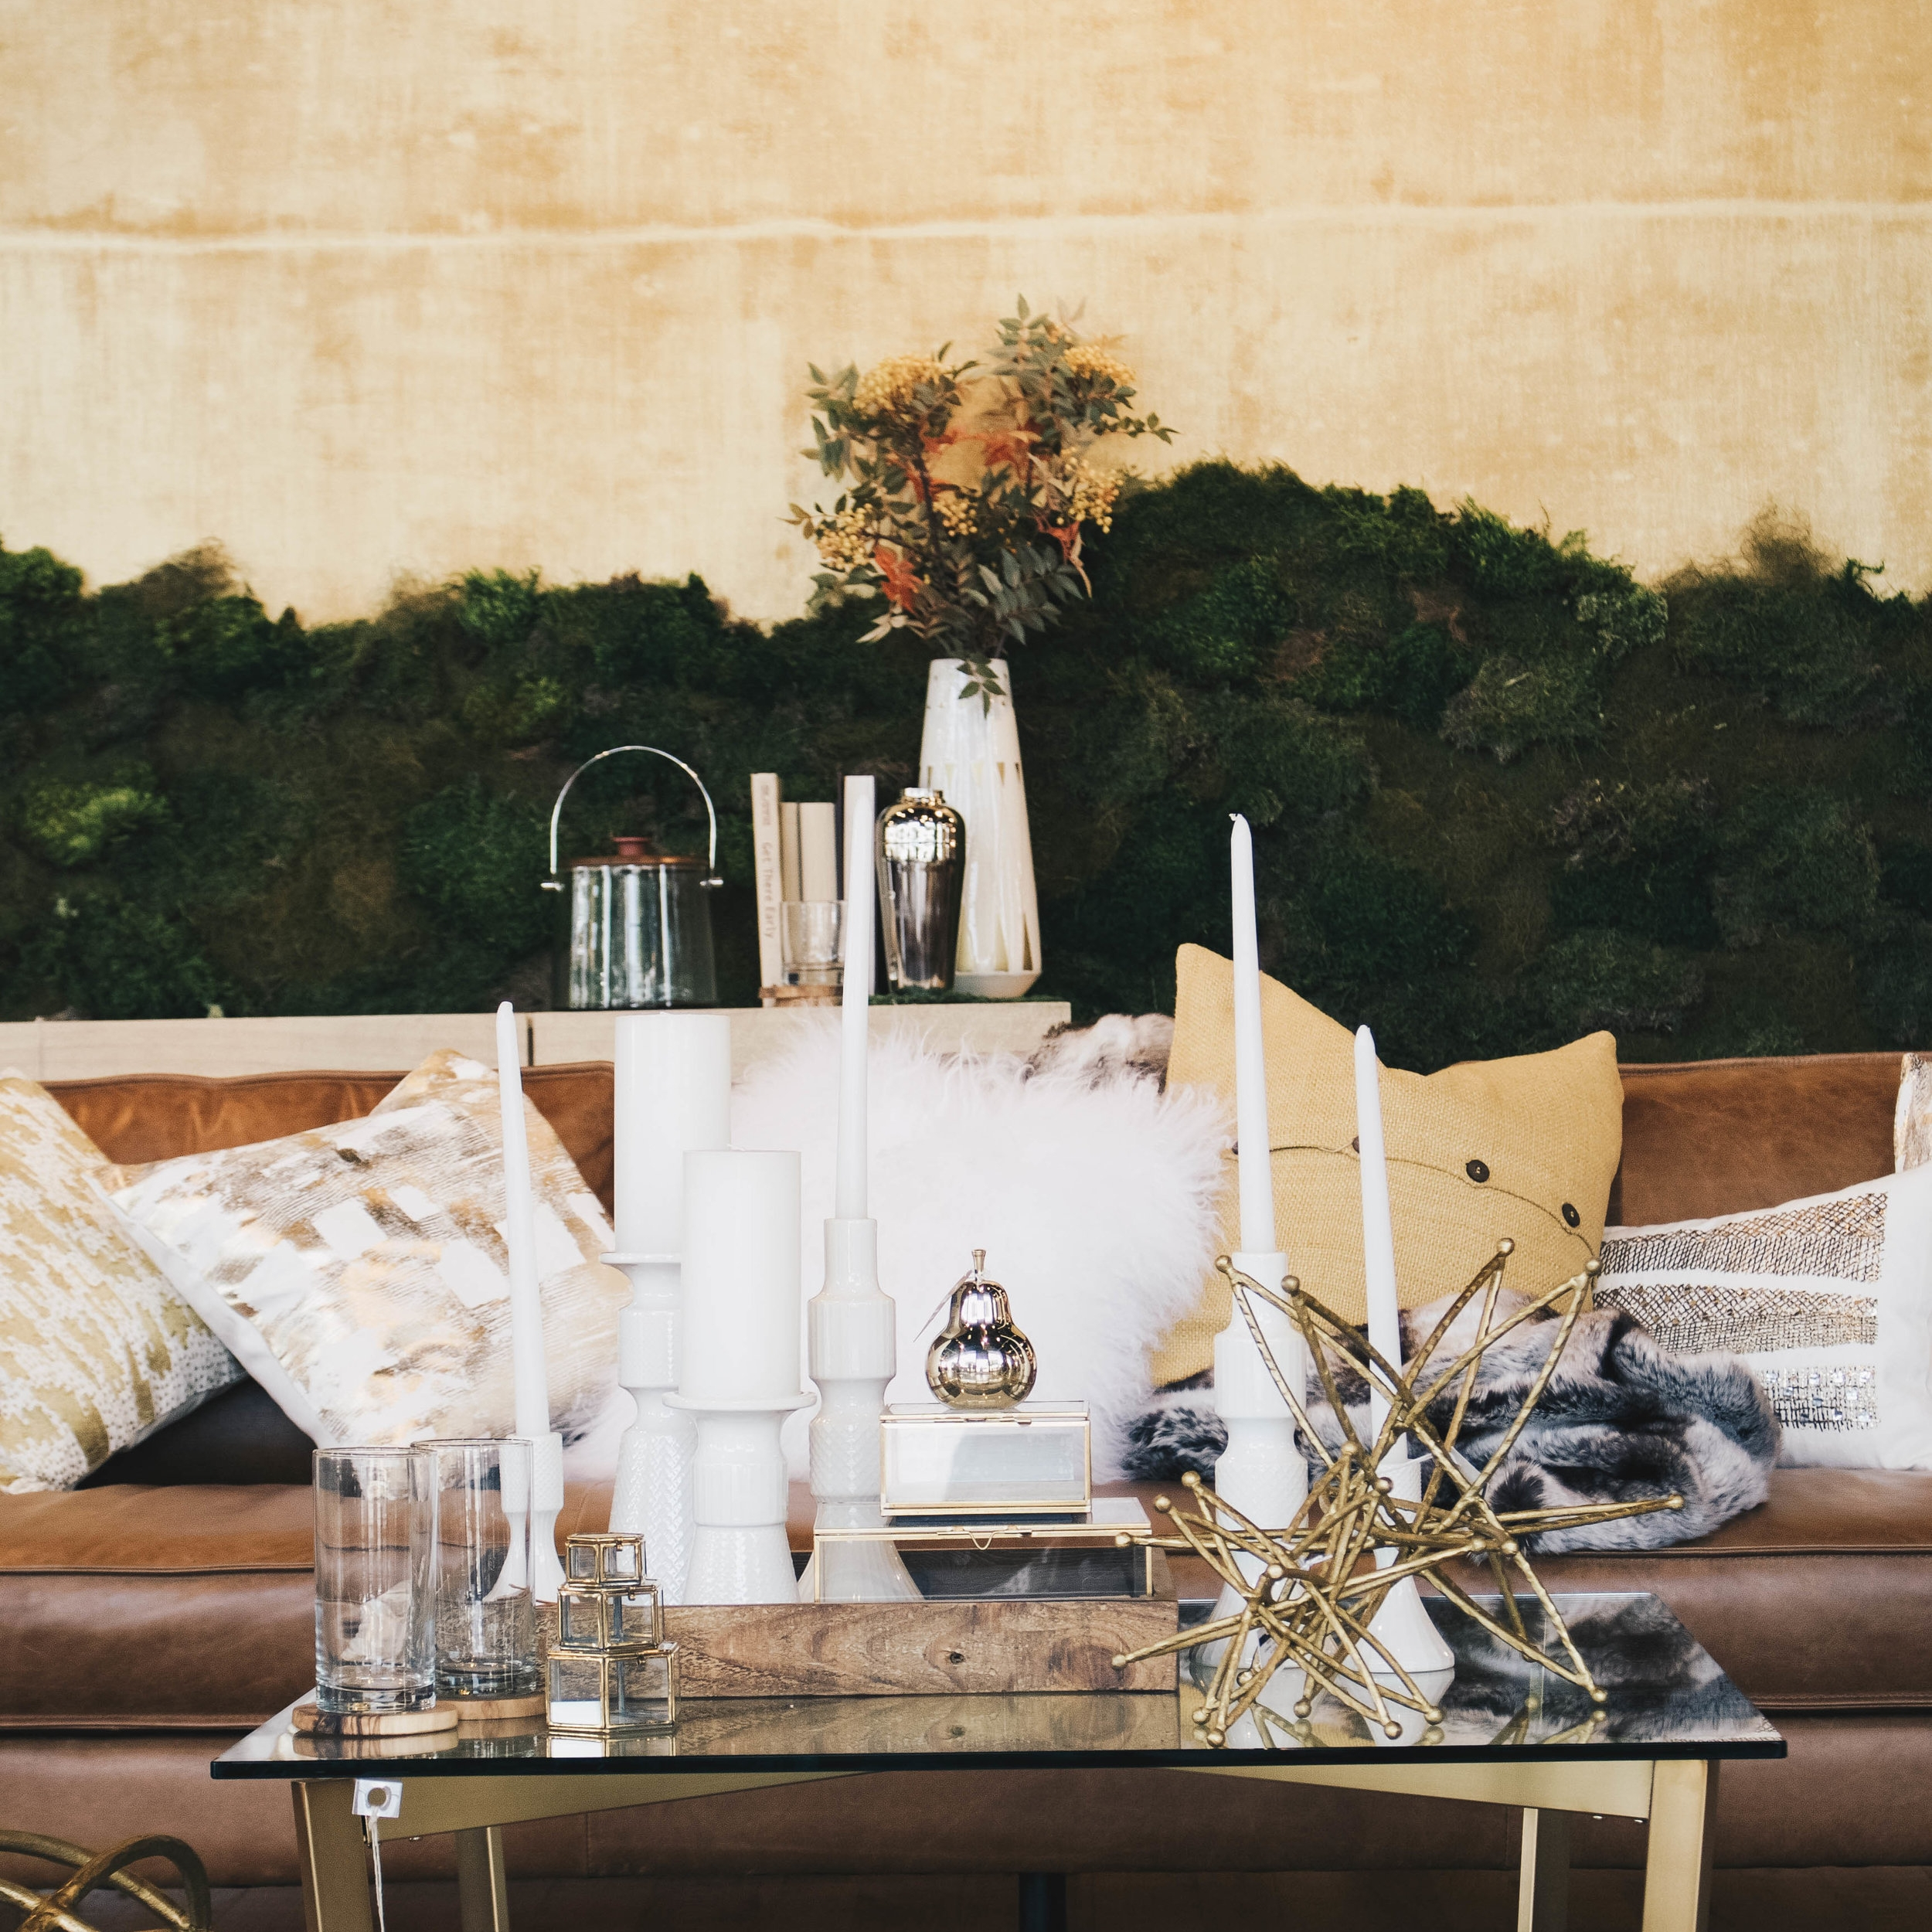 Austin Woman Magazine   article - Freelance photographer for web-based article series.-Collaborated with well-known brands, such as West Elm & Jonathan Adler, for published photoshoot in online exclusive article